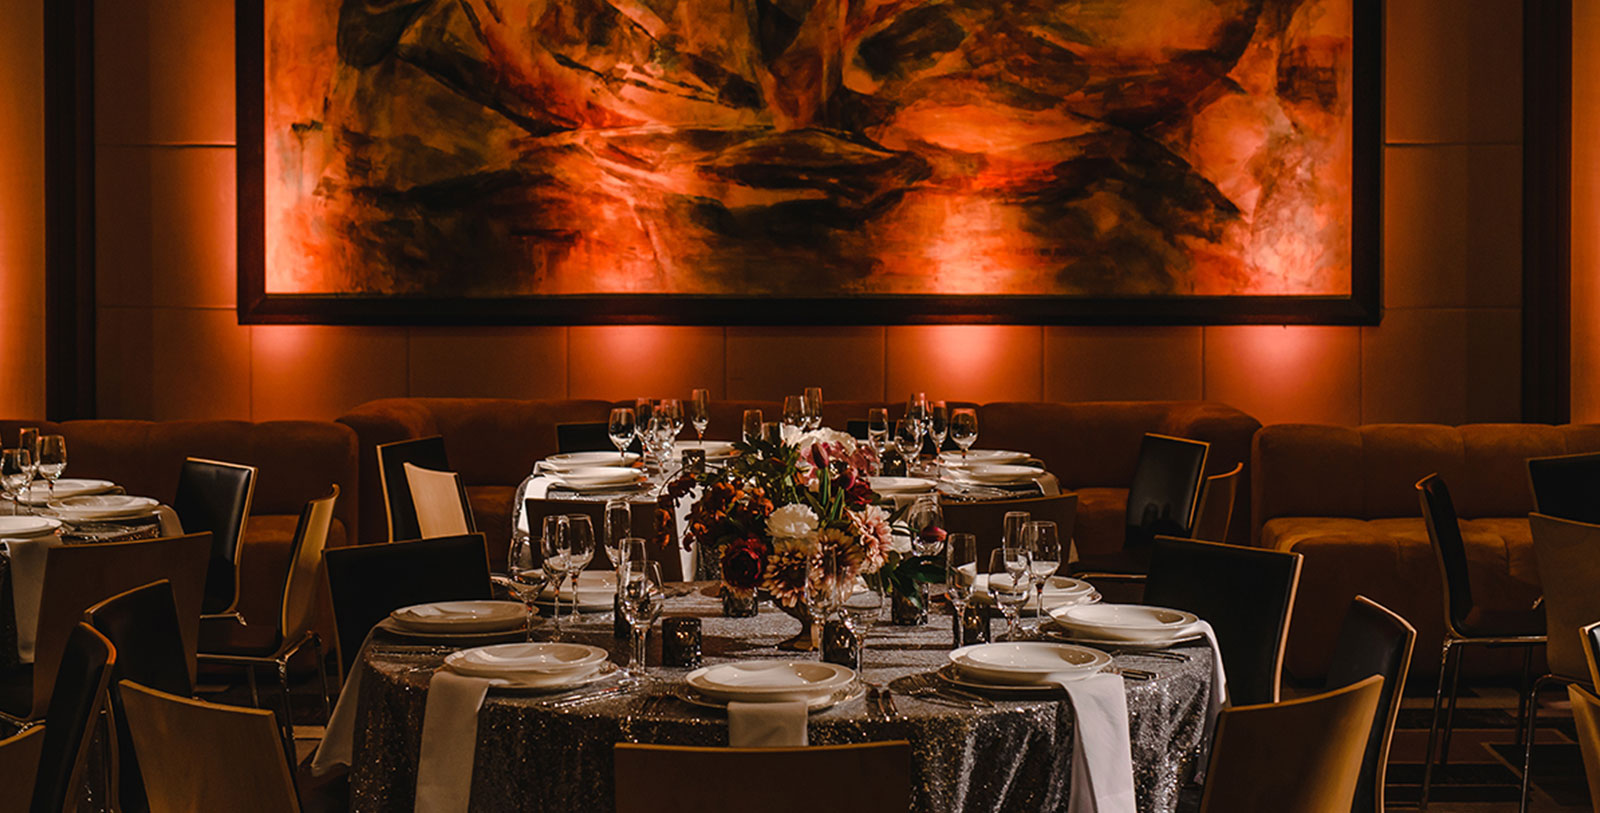 Image of Banquet setting, Fairmont The Queen Elizabeth, 1958, Member of Historic Hotels Worldwide, in Montreal, Quebec, Weddings